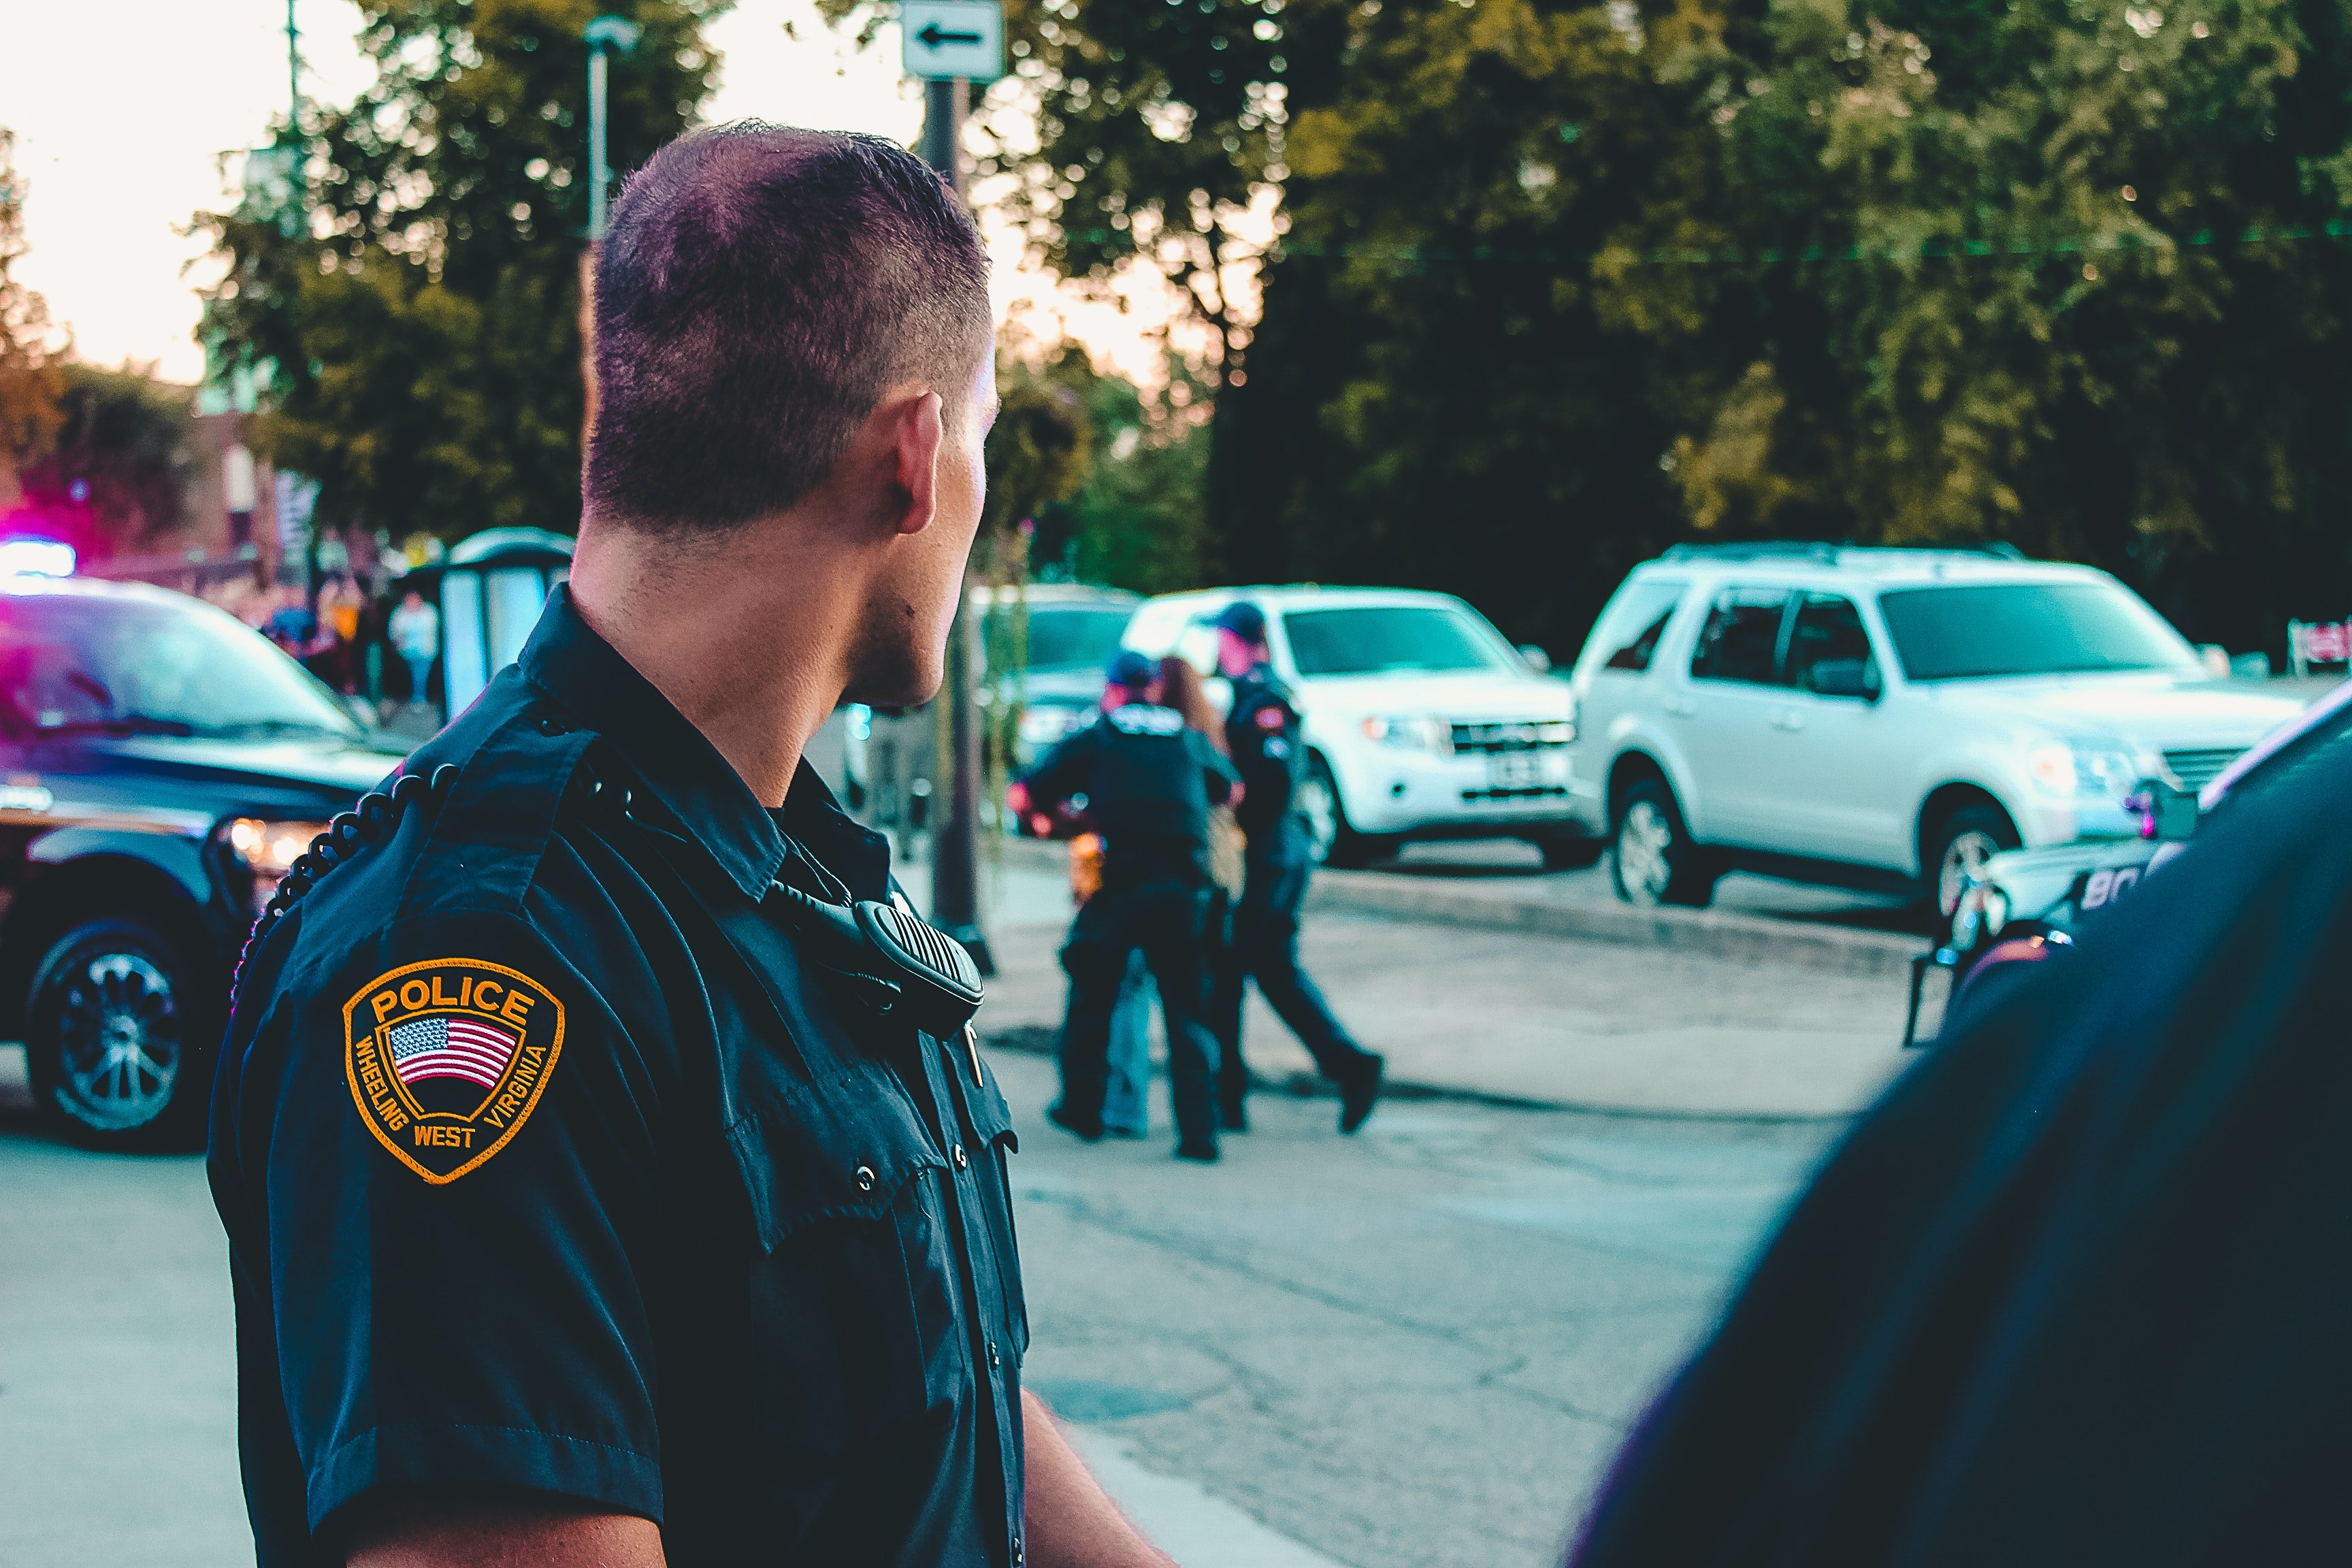 A police officer looks back towards a vehicle behind him.   Pexels/ Rosemary Ketchum